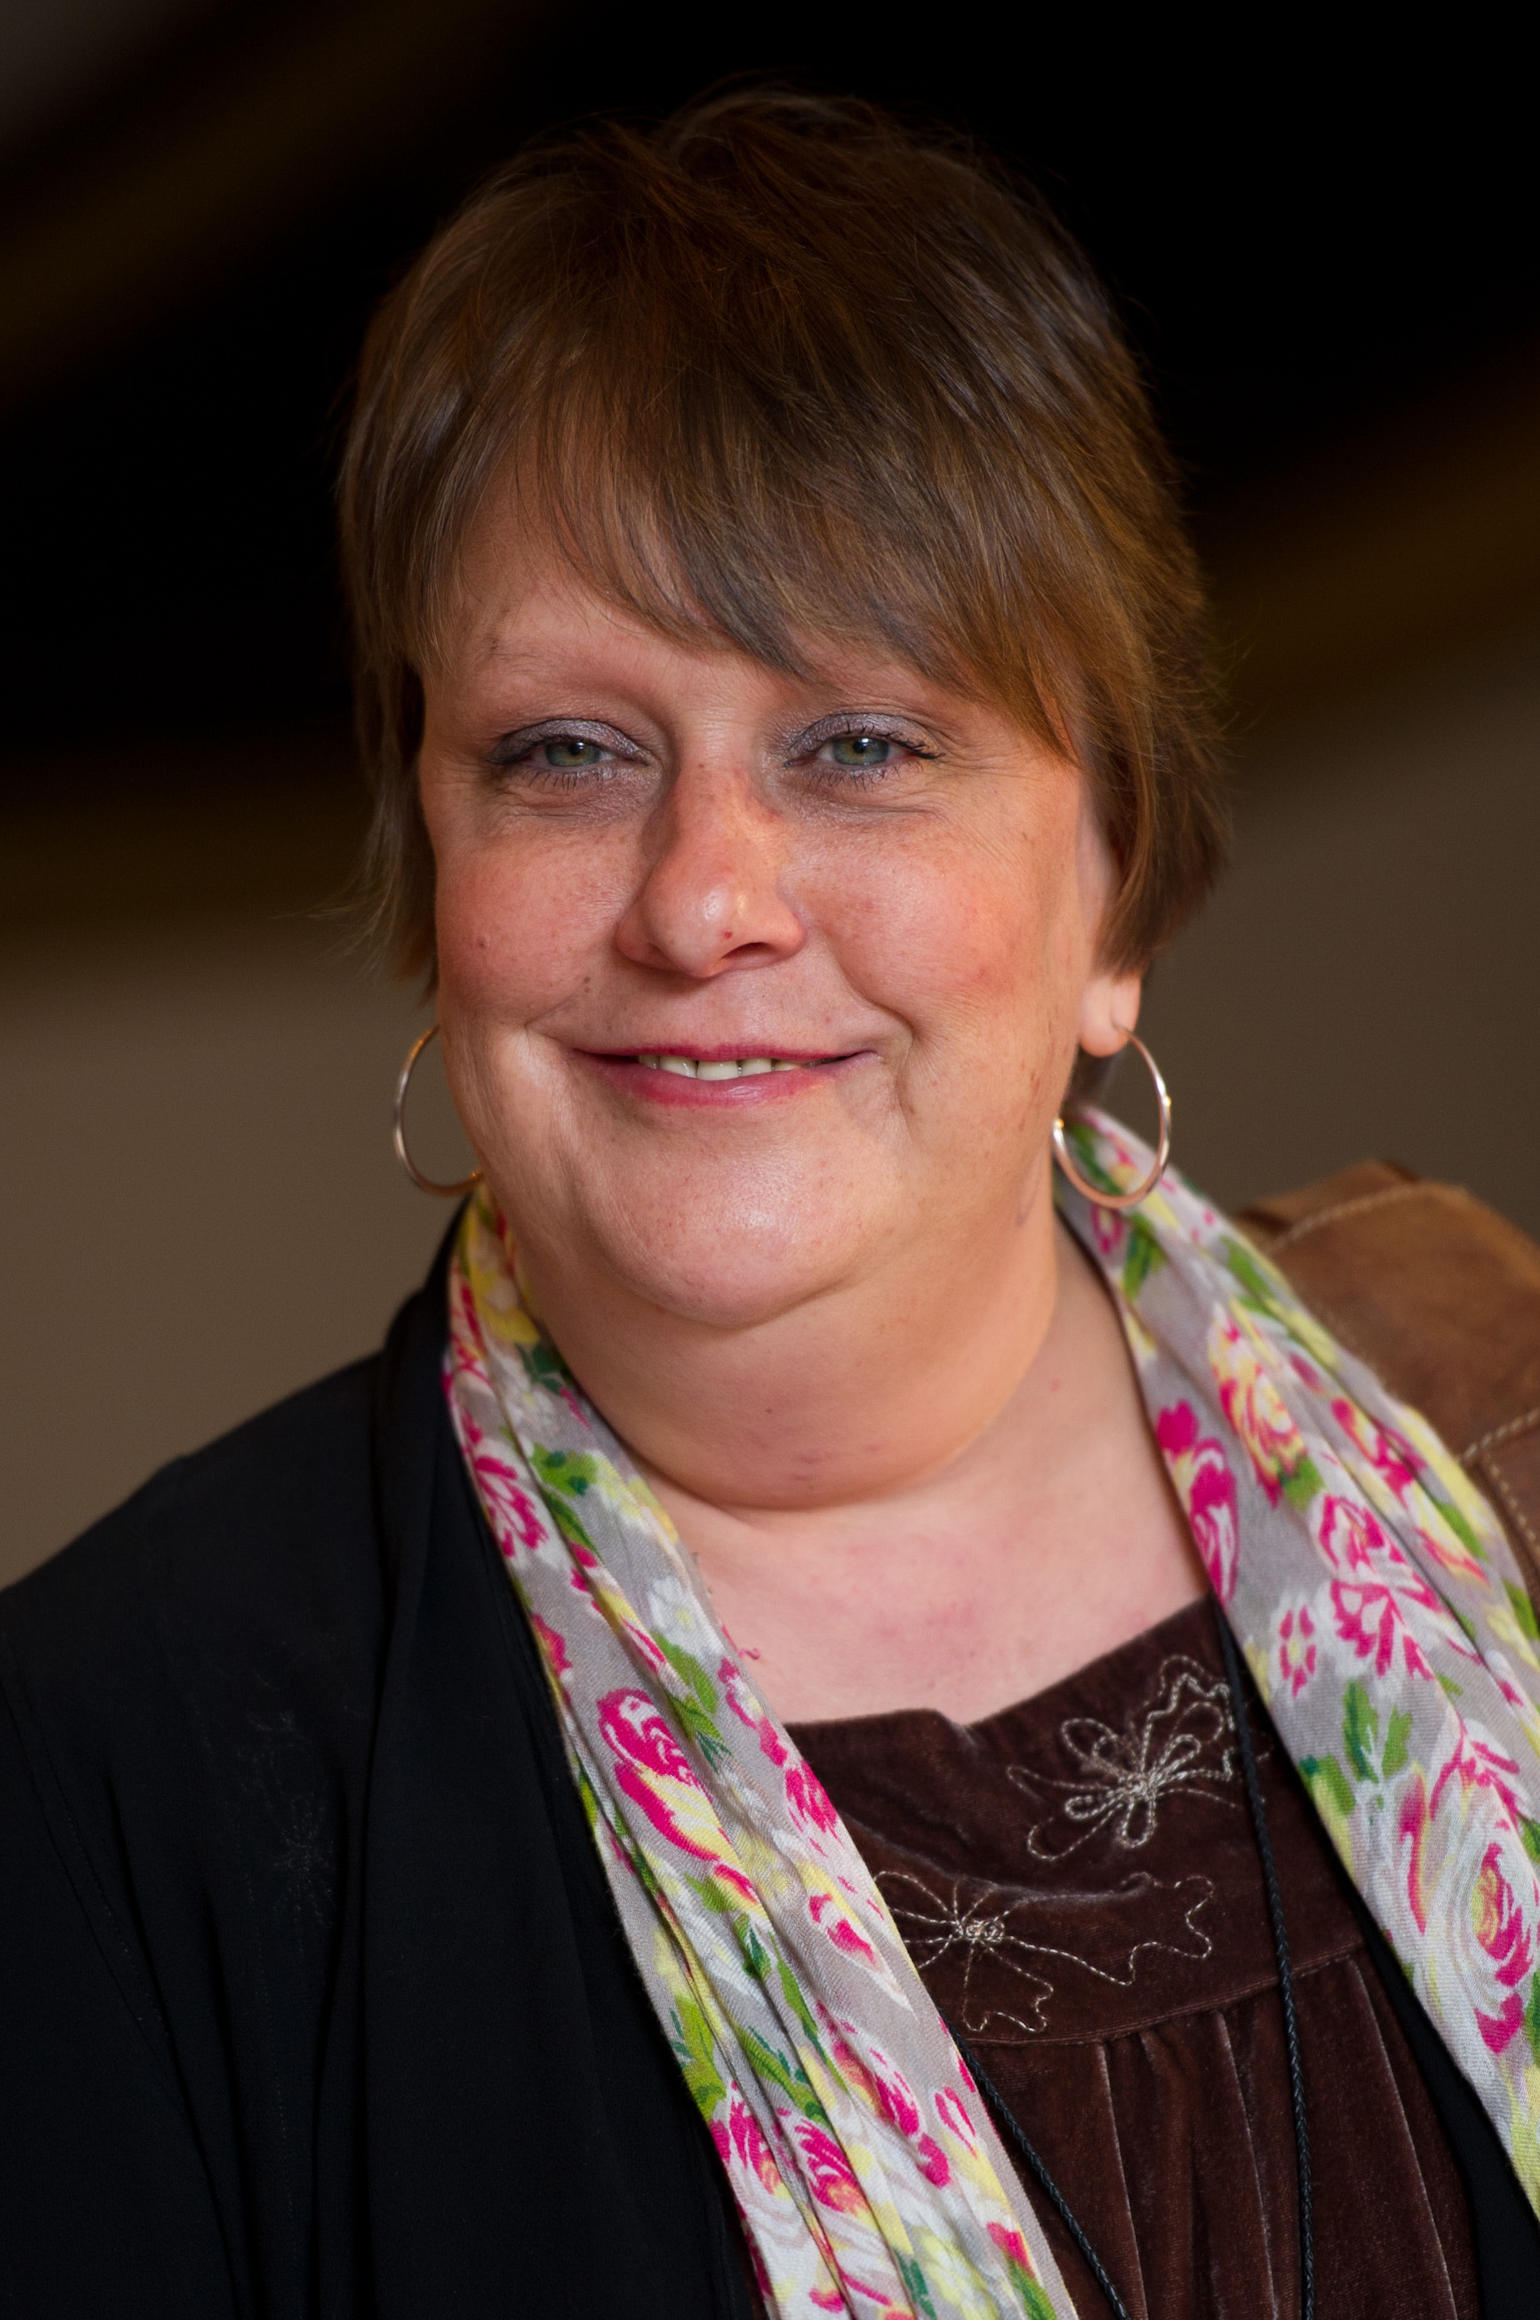 Kathy Burke at the Women In Film And TV Awards 2011.